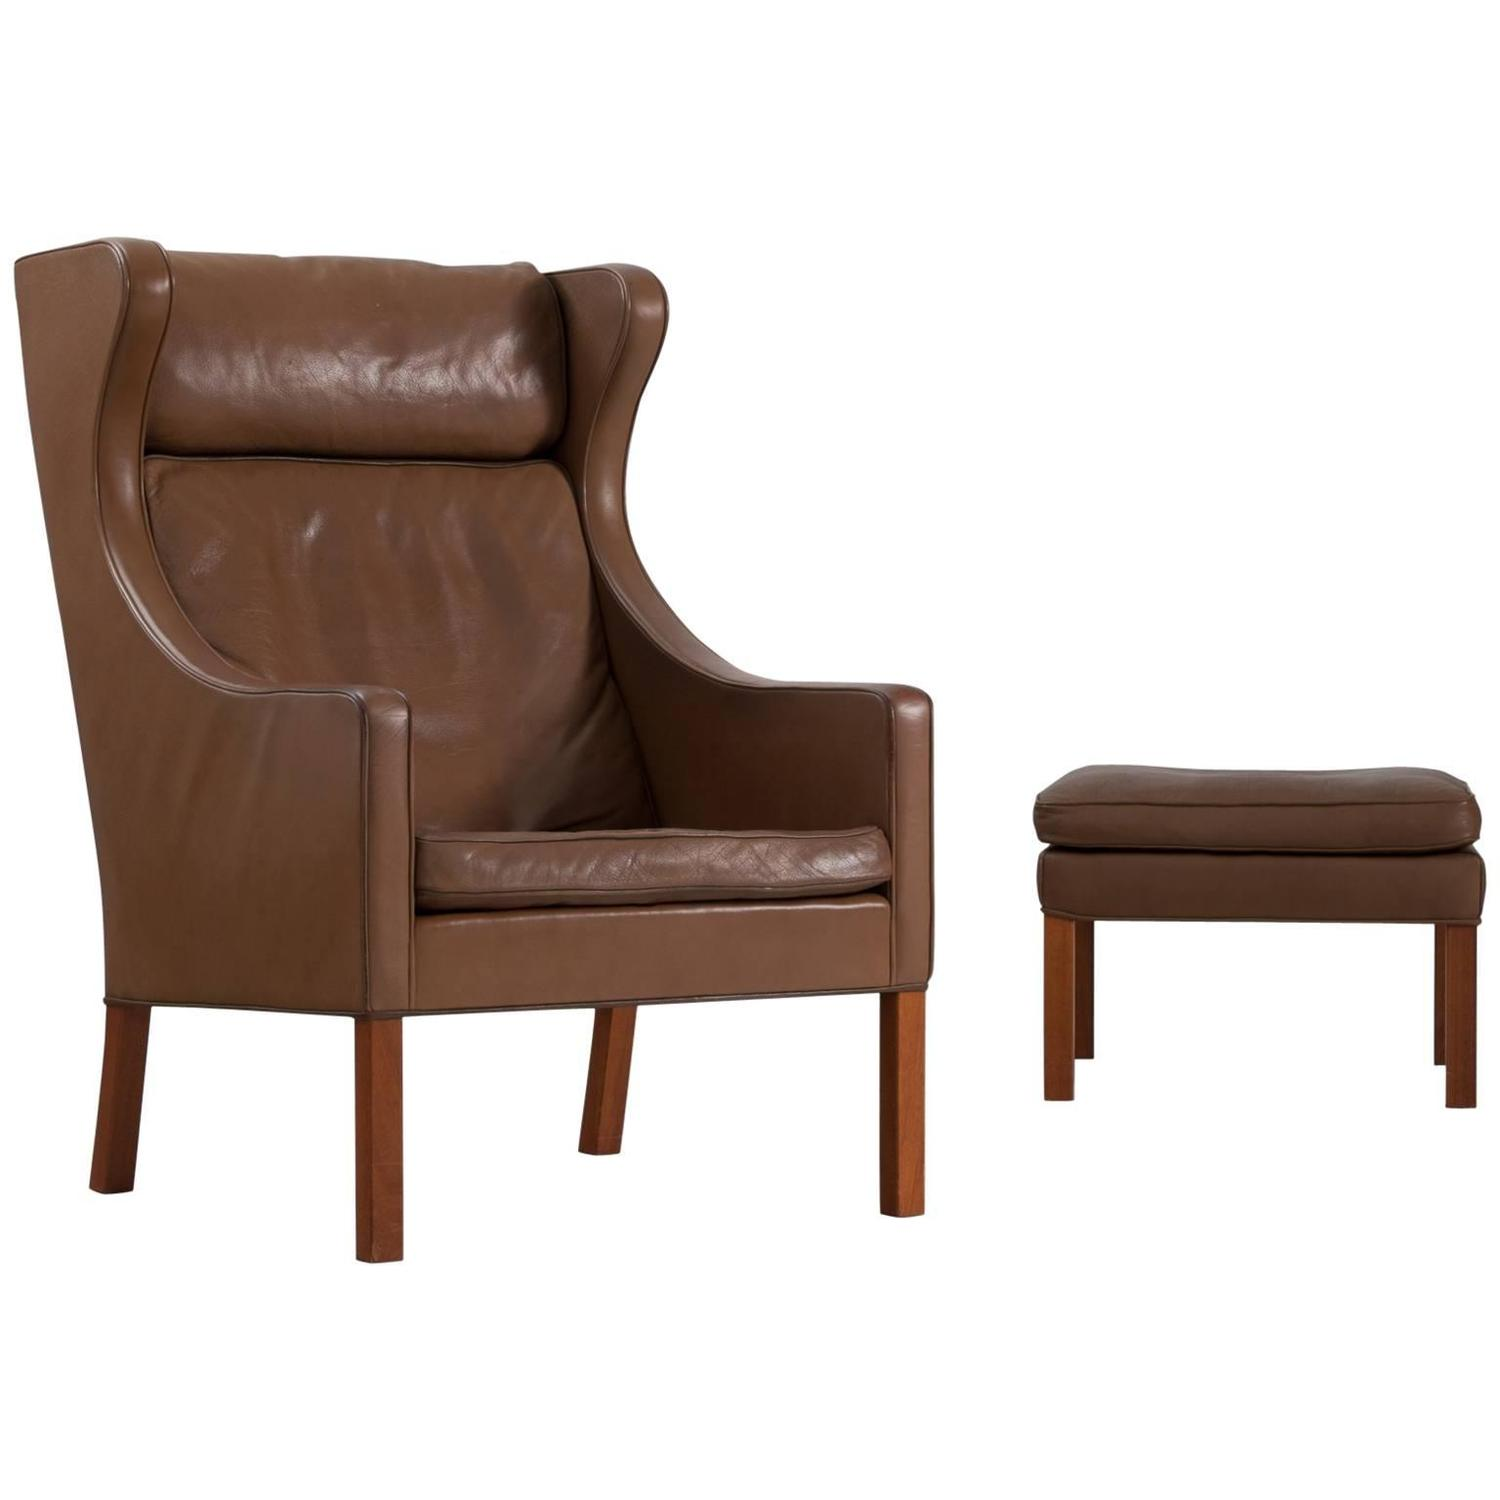 b rge mogensen brown leather wingback chair denmark. Black Bedroom Furniture Sets. Home Design Ideas